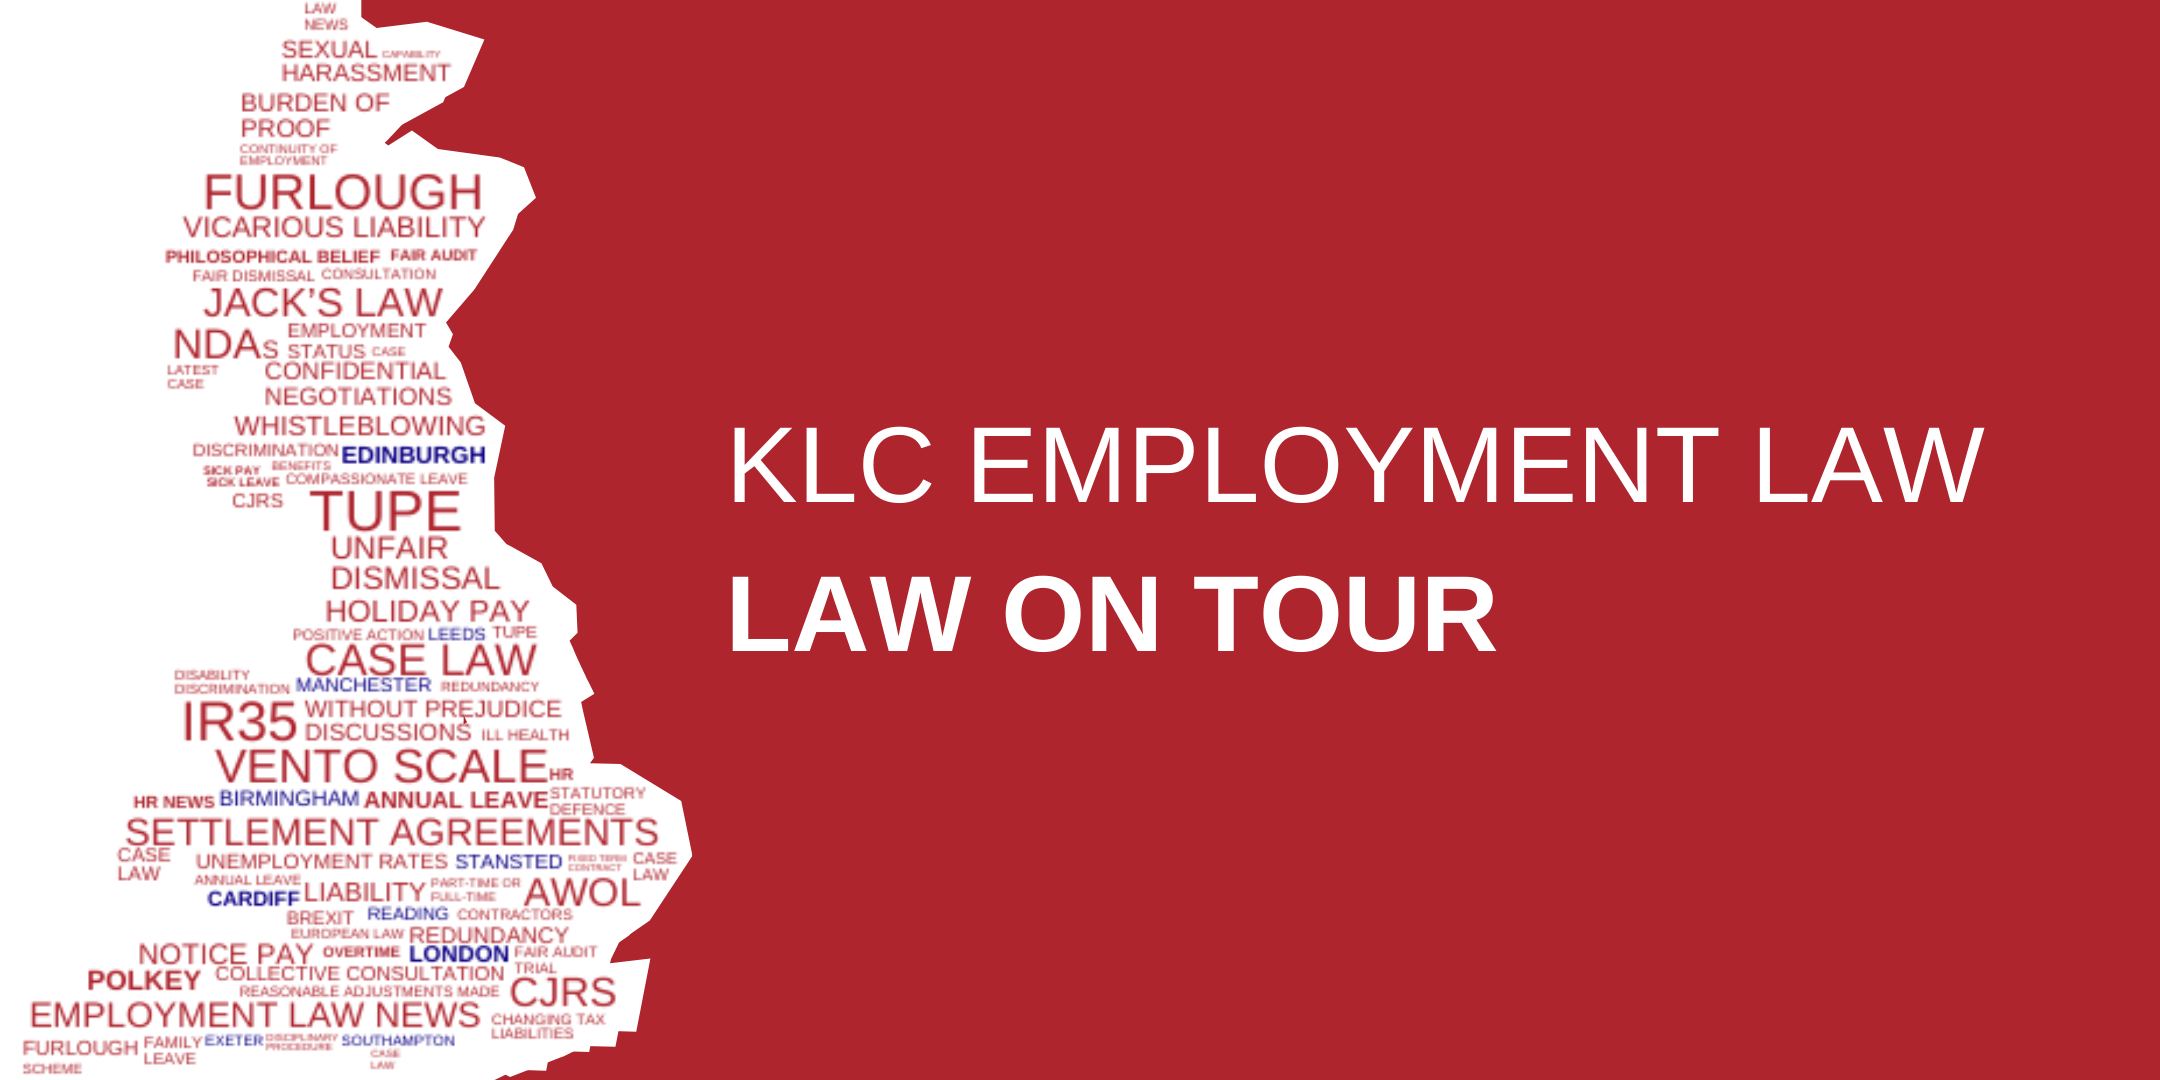 KLC's Virtual Law on Tour